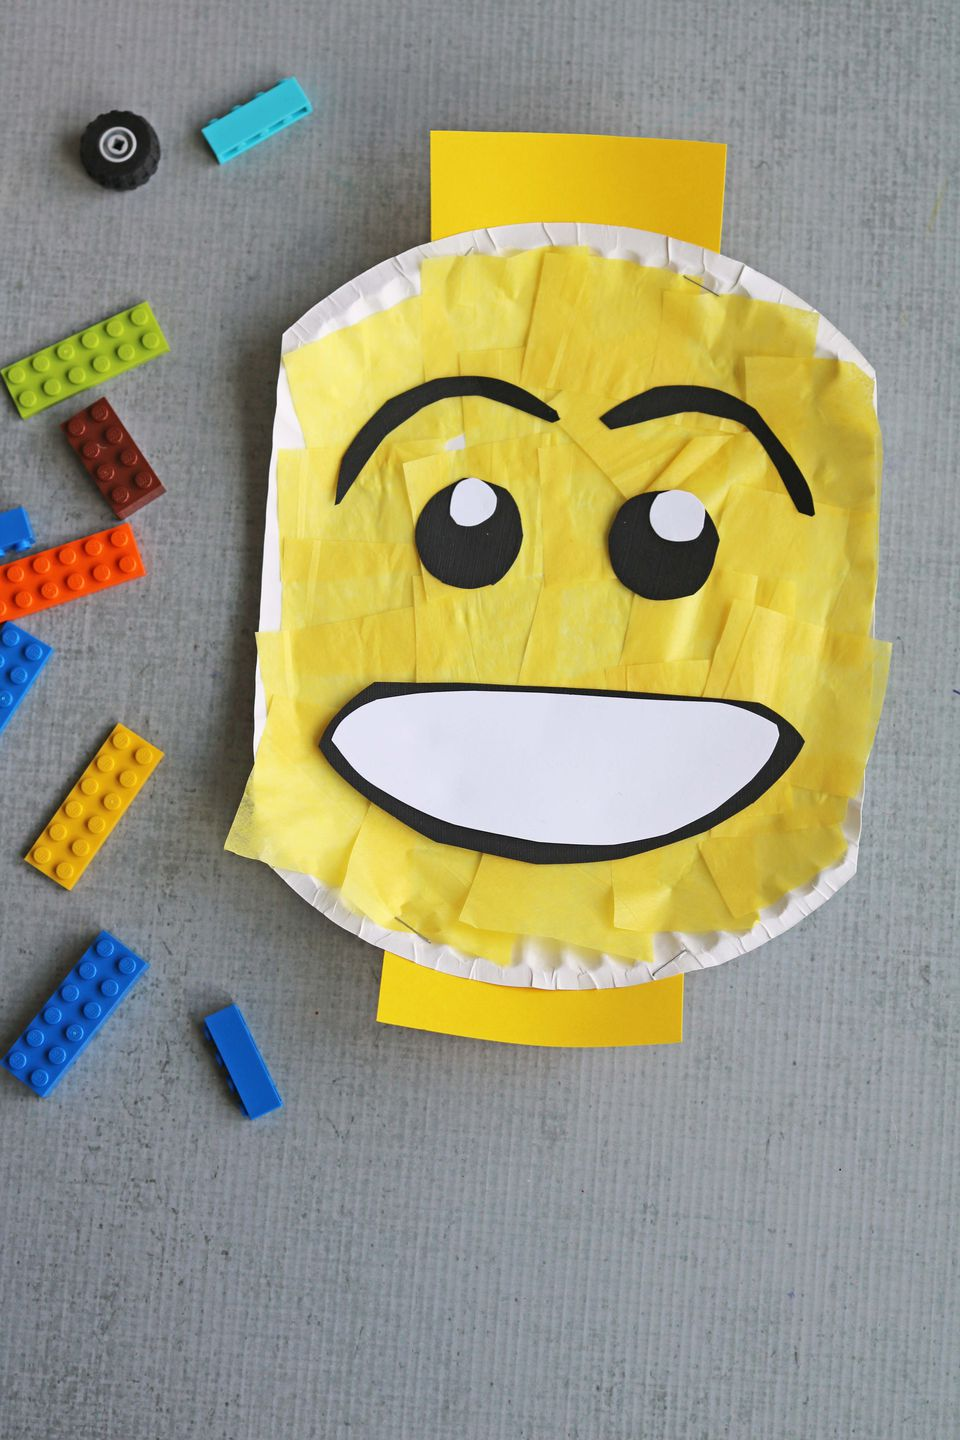 DIY: Paper Plate Lego